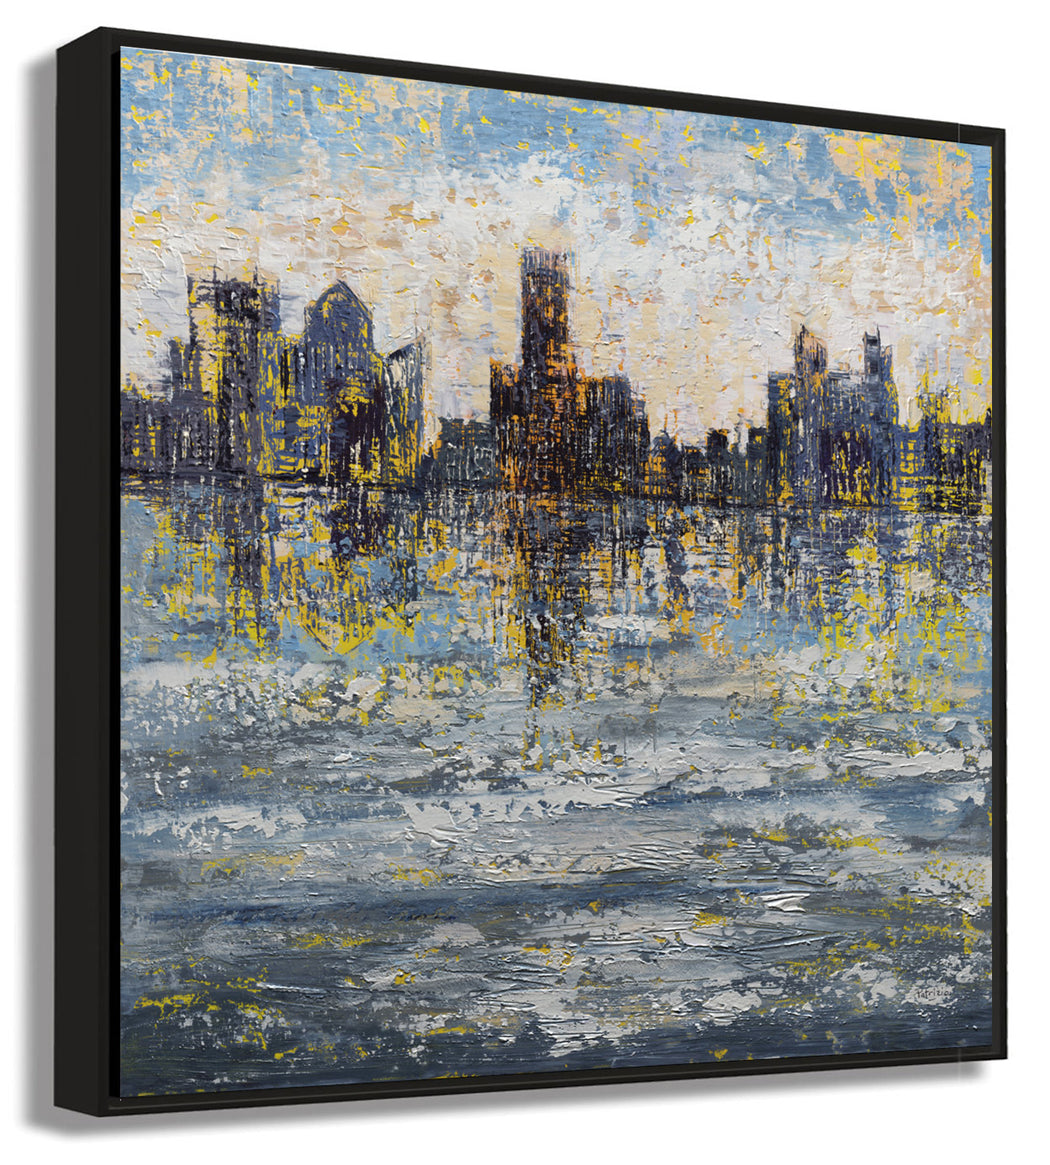 Side View of Framed Abstract City Skyline Art Print, On the Town by Pietro Adamo